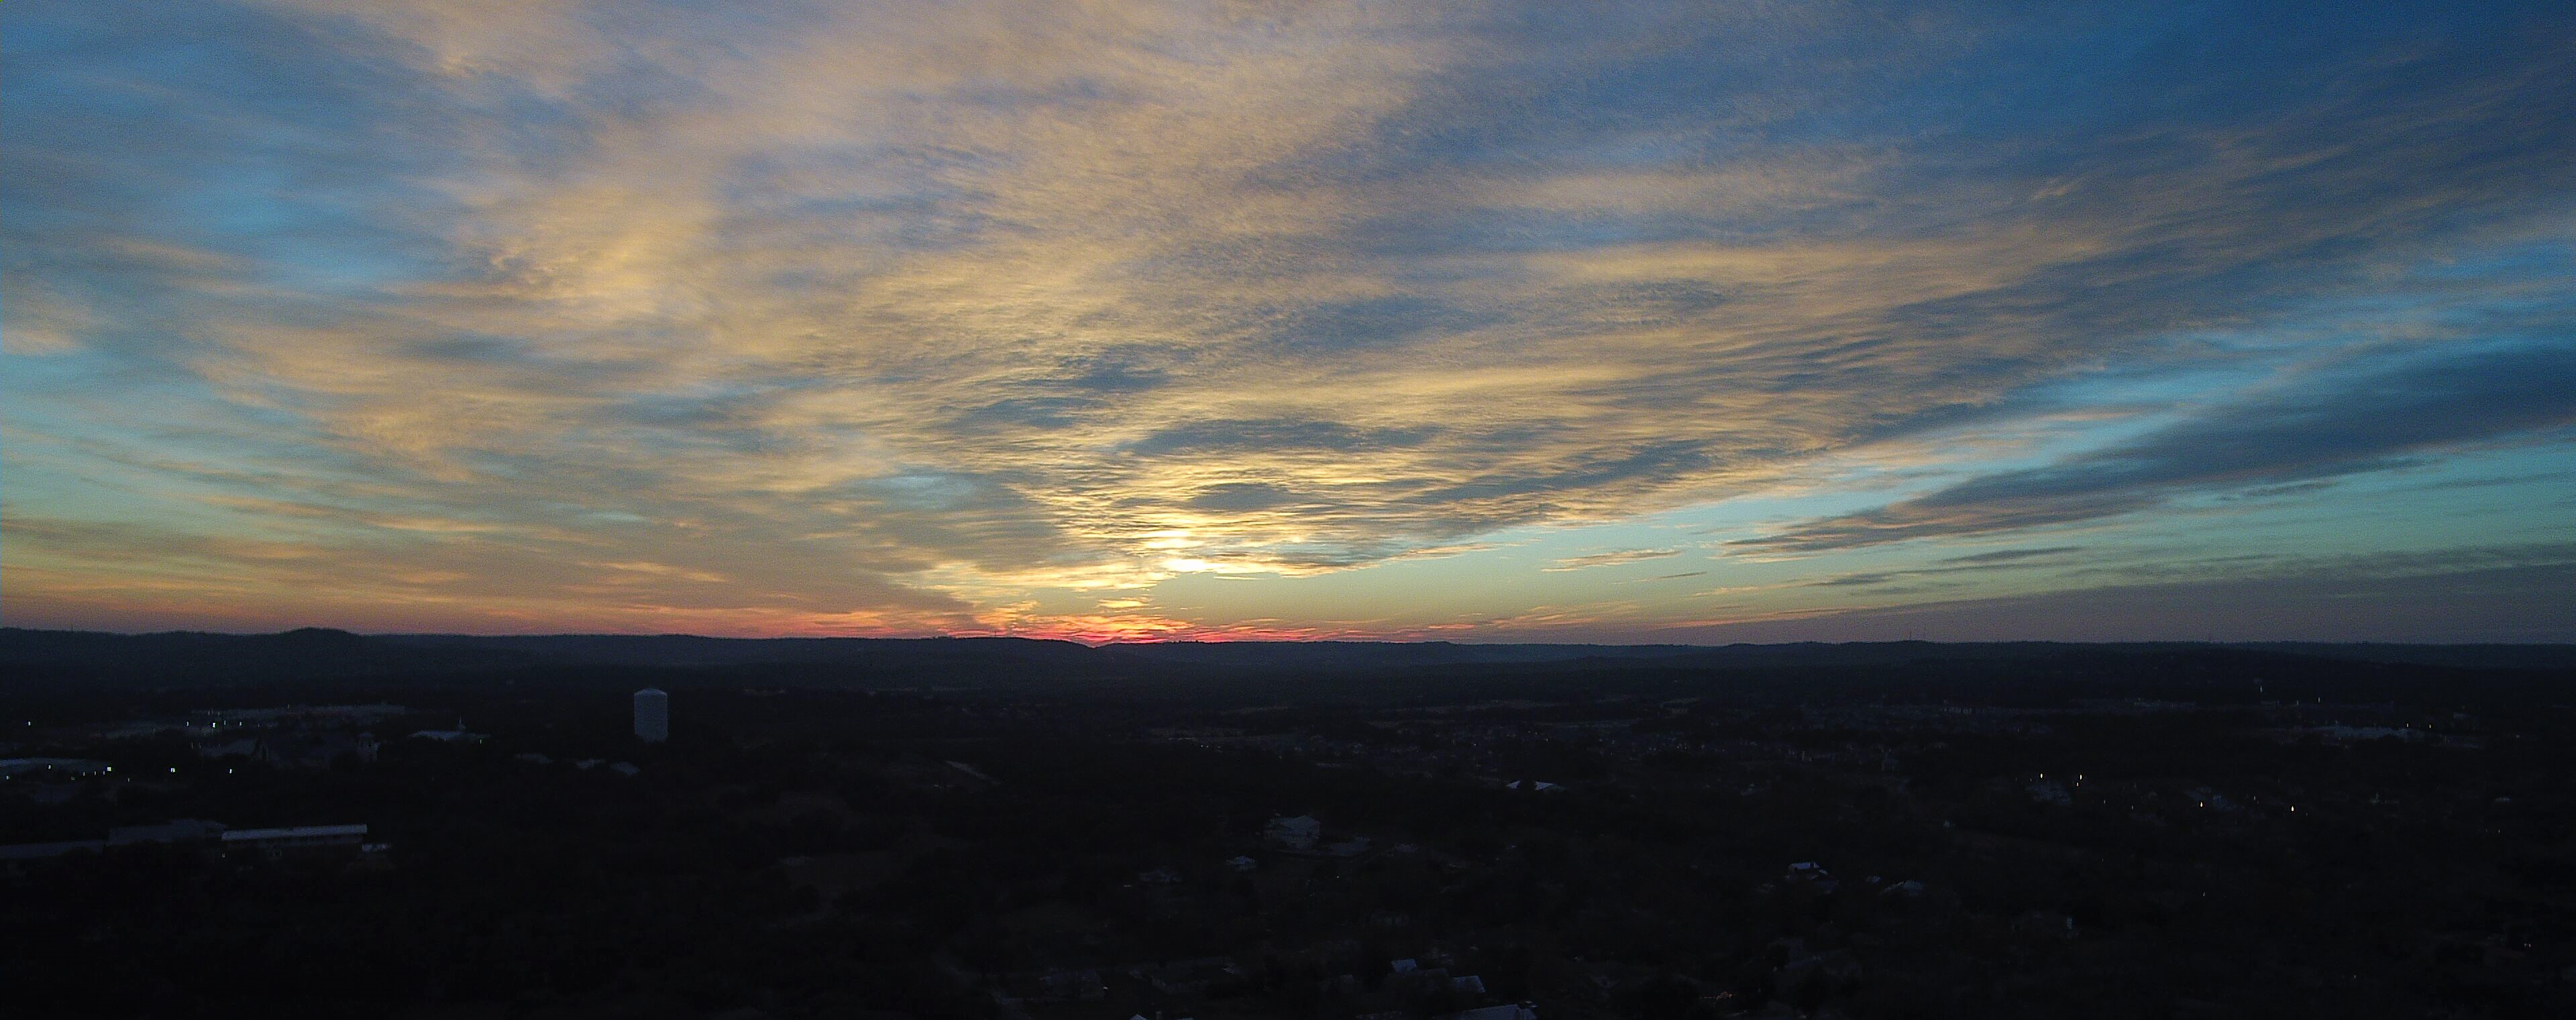 Boerne Sunset 12Dec2016_1_wideview